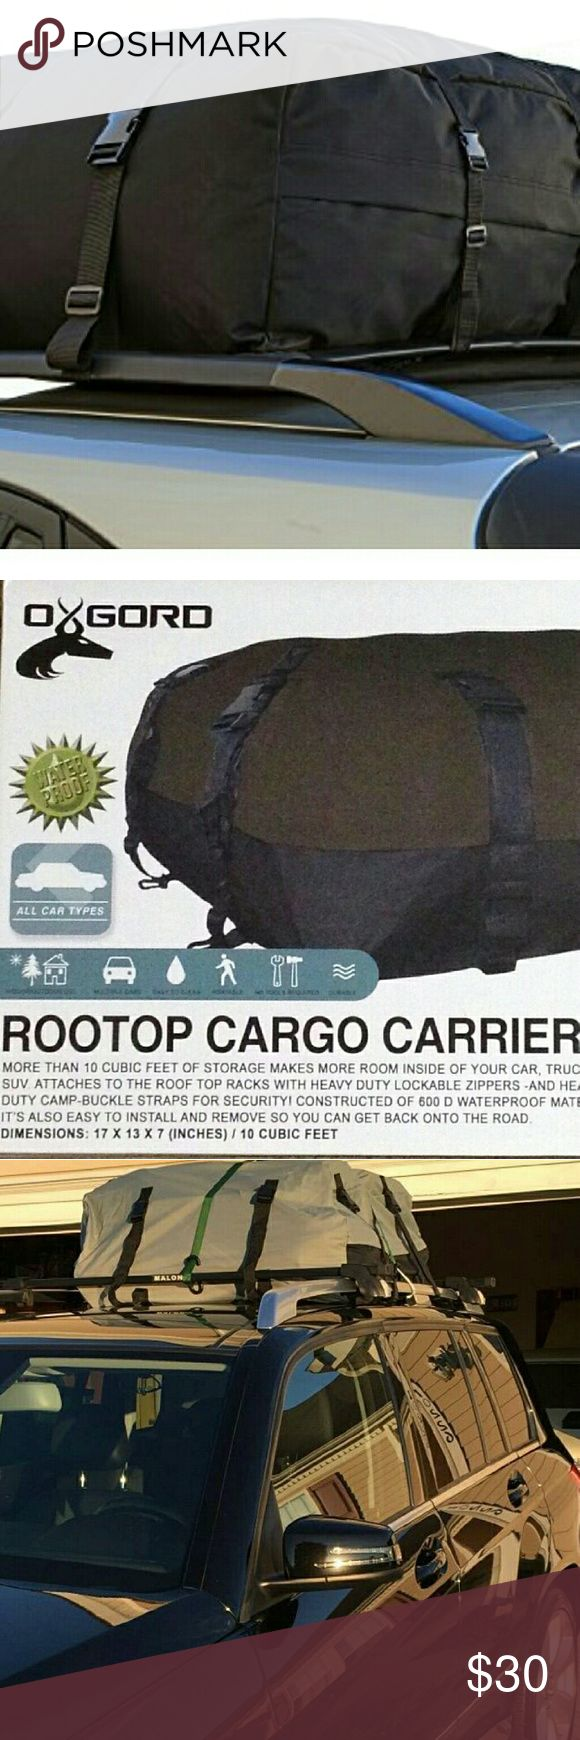 10-Cf Roof Top Cargo Rack Water/Windproof Carrier 10 CUBIC FOOT ROOF CARGO CARRIER: Double your vehicle's cargo space and free up your Car, Truck, or SUV's interior with this All Weather Proof Rooftop Cargo Carrier. Perfect for road trips, vacations, or equipment hauling. Heavy duty lockable zippers secure your luggage and belongings while Cam-Buckle straps allow for easy installation and removal of the roof rack bag. Allow yourself to take everything you need for your next trip with OxGords…